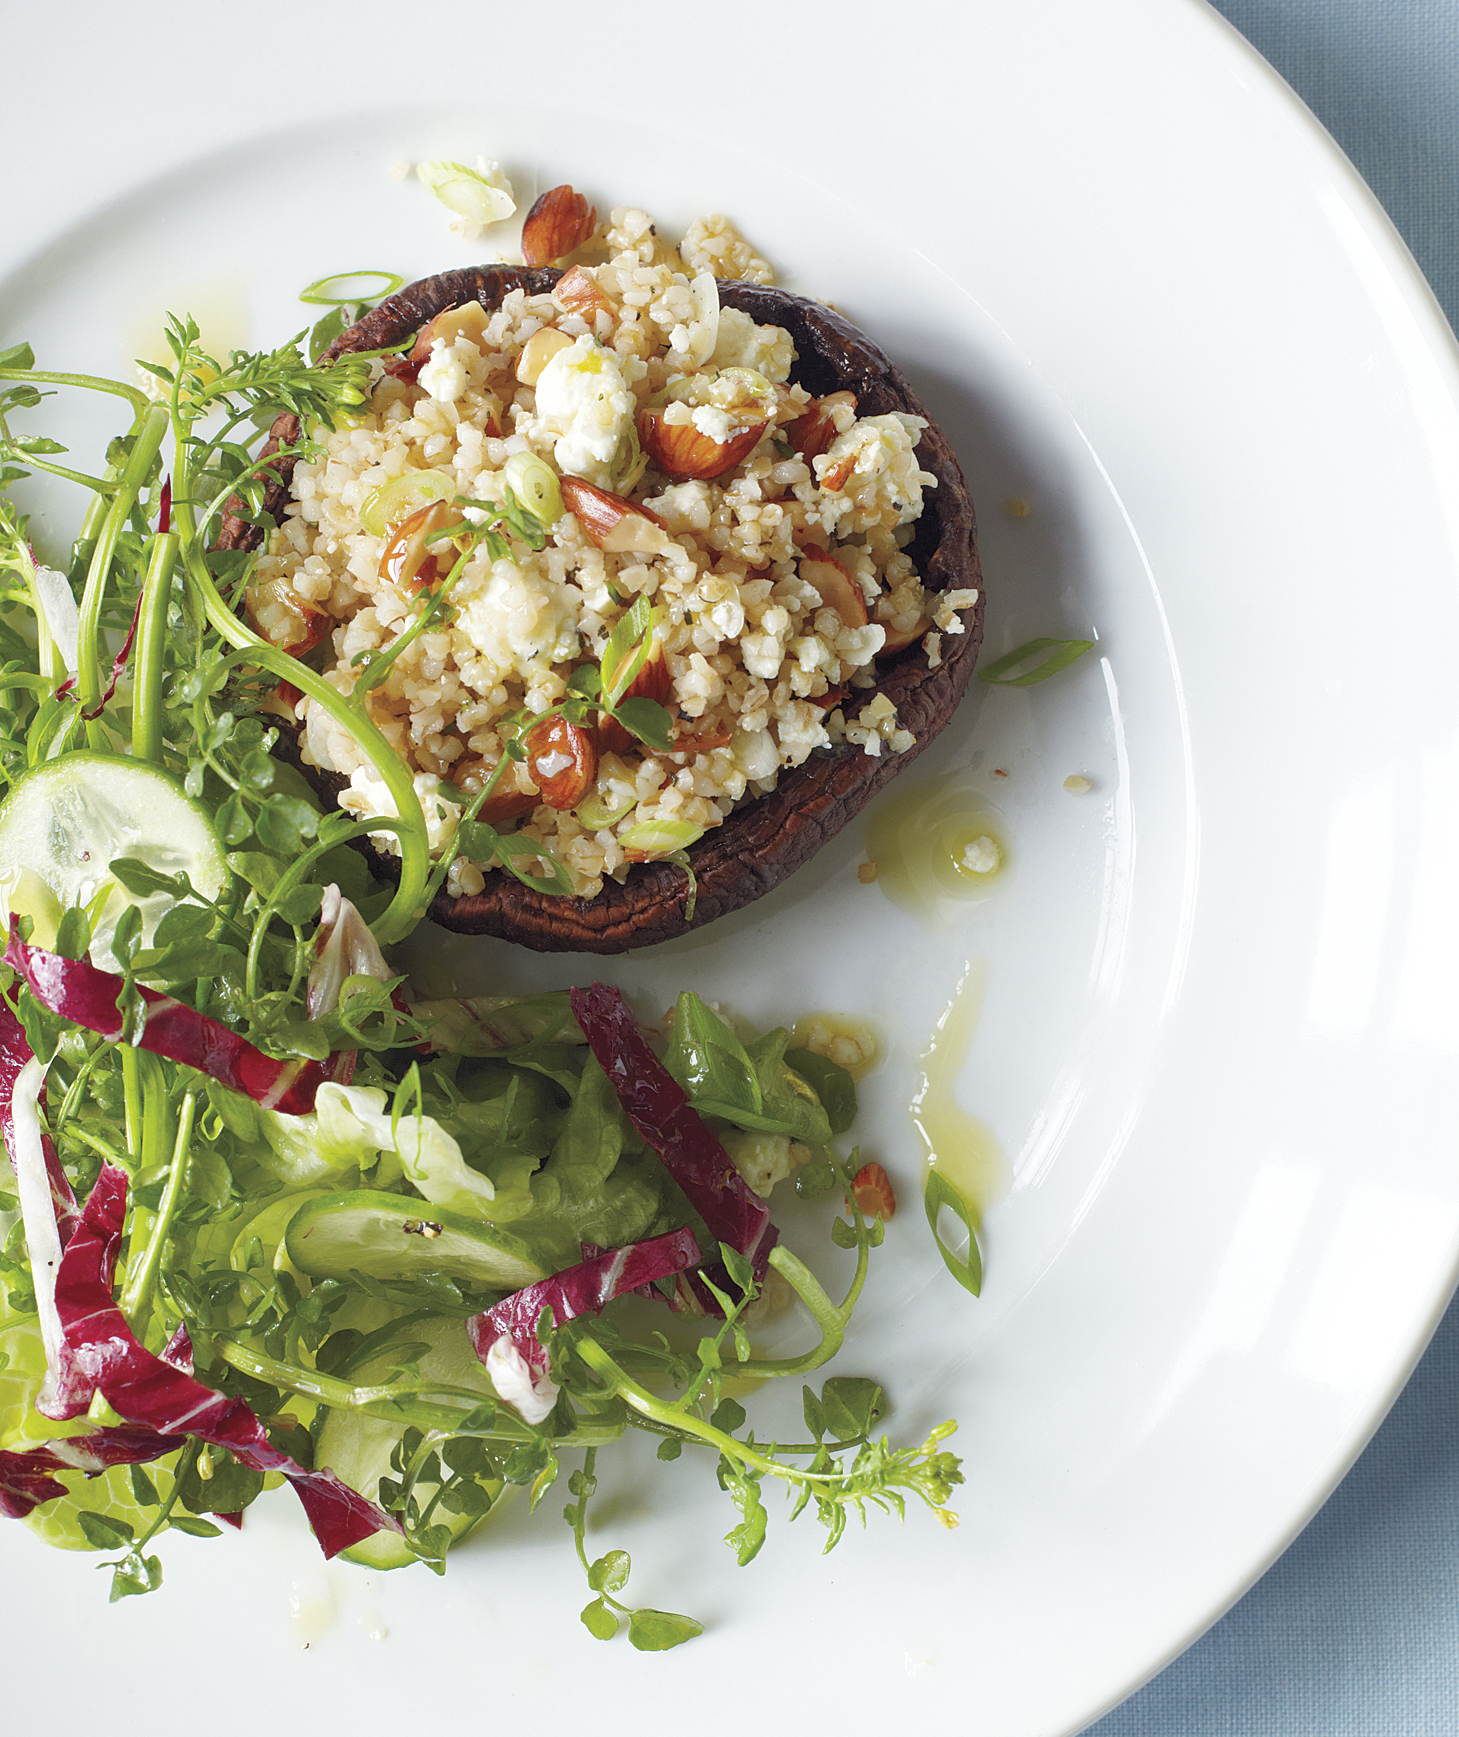 Stuffed Portobello Mushrooms With Feta and Almonds